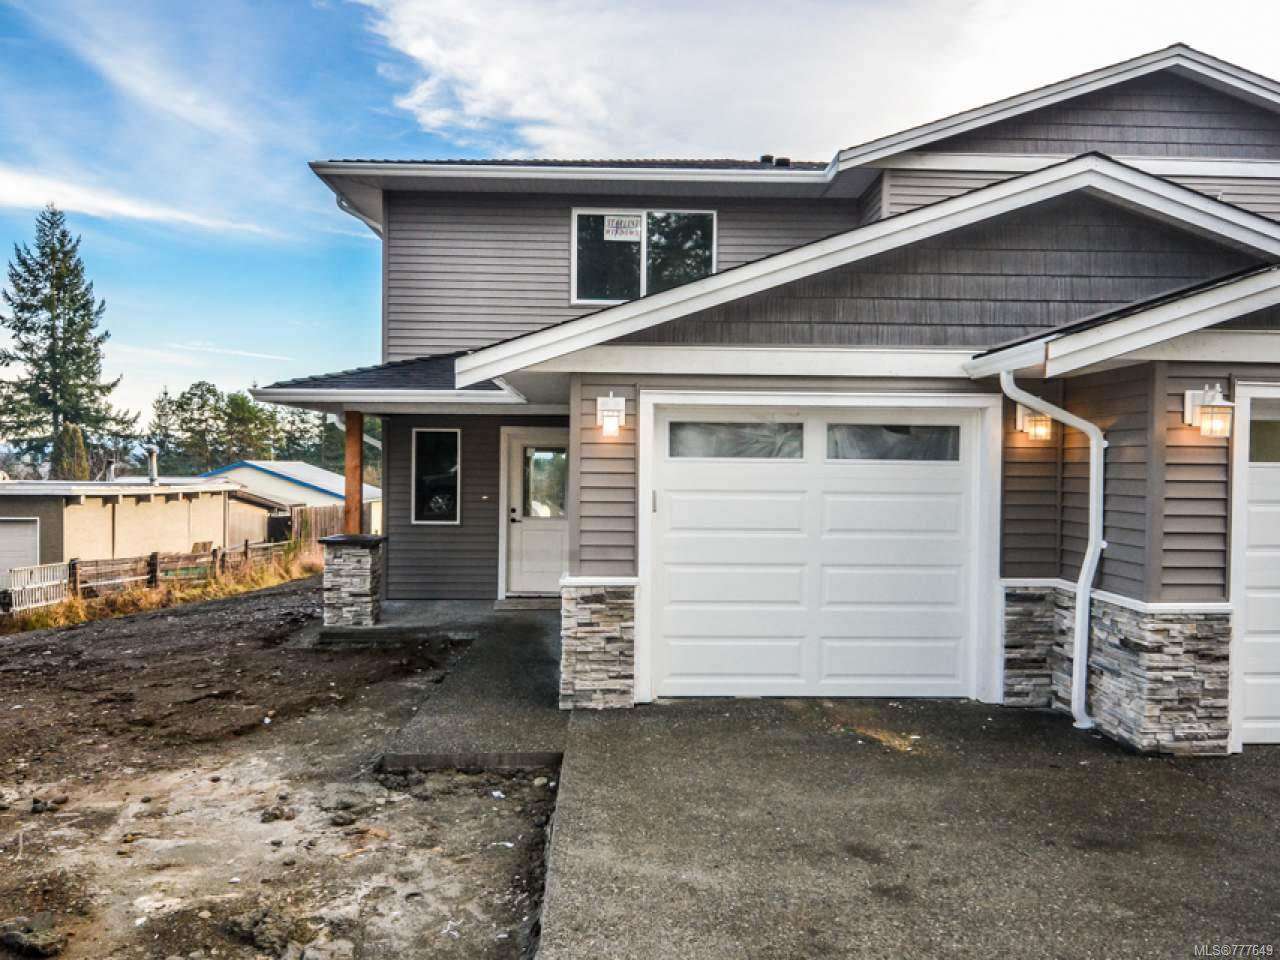 Main Photo: 1 535 Petersen Rd in CAMPBELL RIVER: CR Campbell River West Half Duplex for sale (Campbell River)  : MLS®# 777649